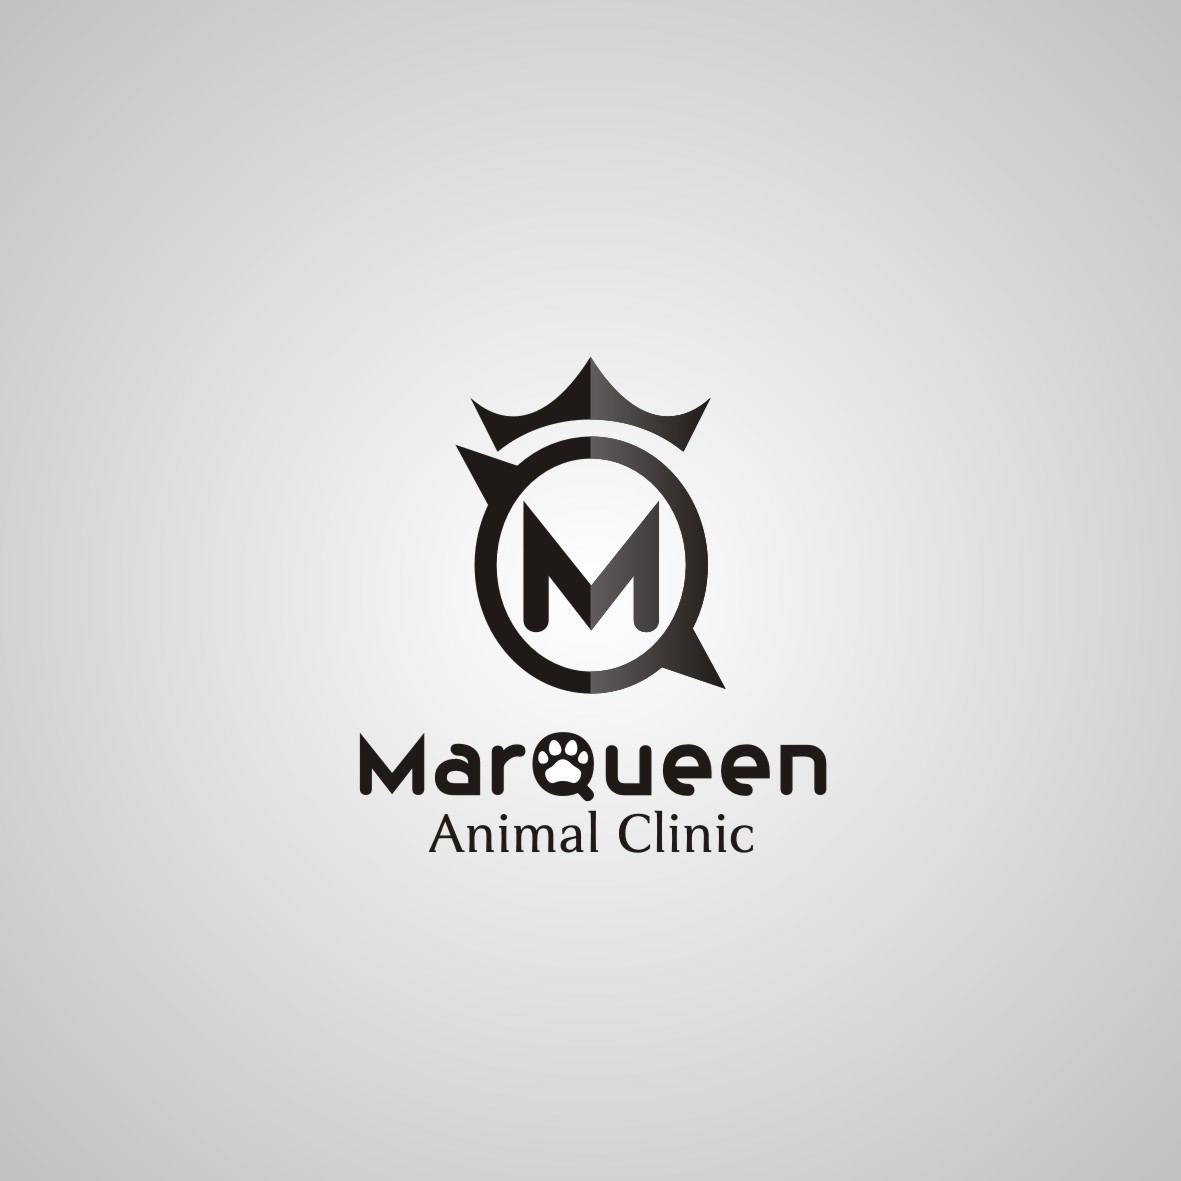 Logo Design by arteo_design - Entry No. 160 in the Logo Design Contest Fun Logo Design for MarQueen Animal Clinic.